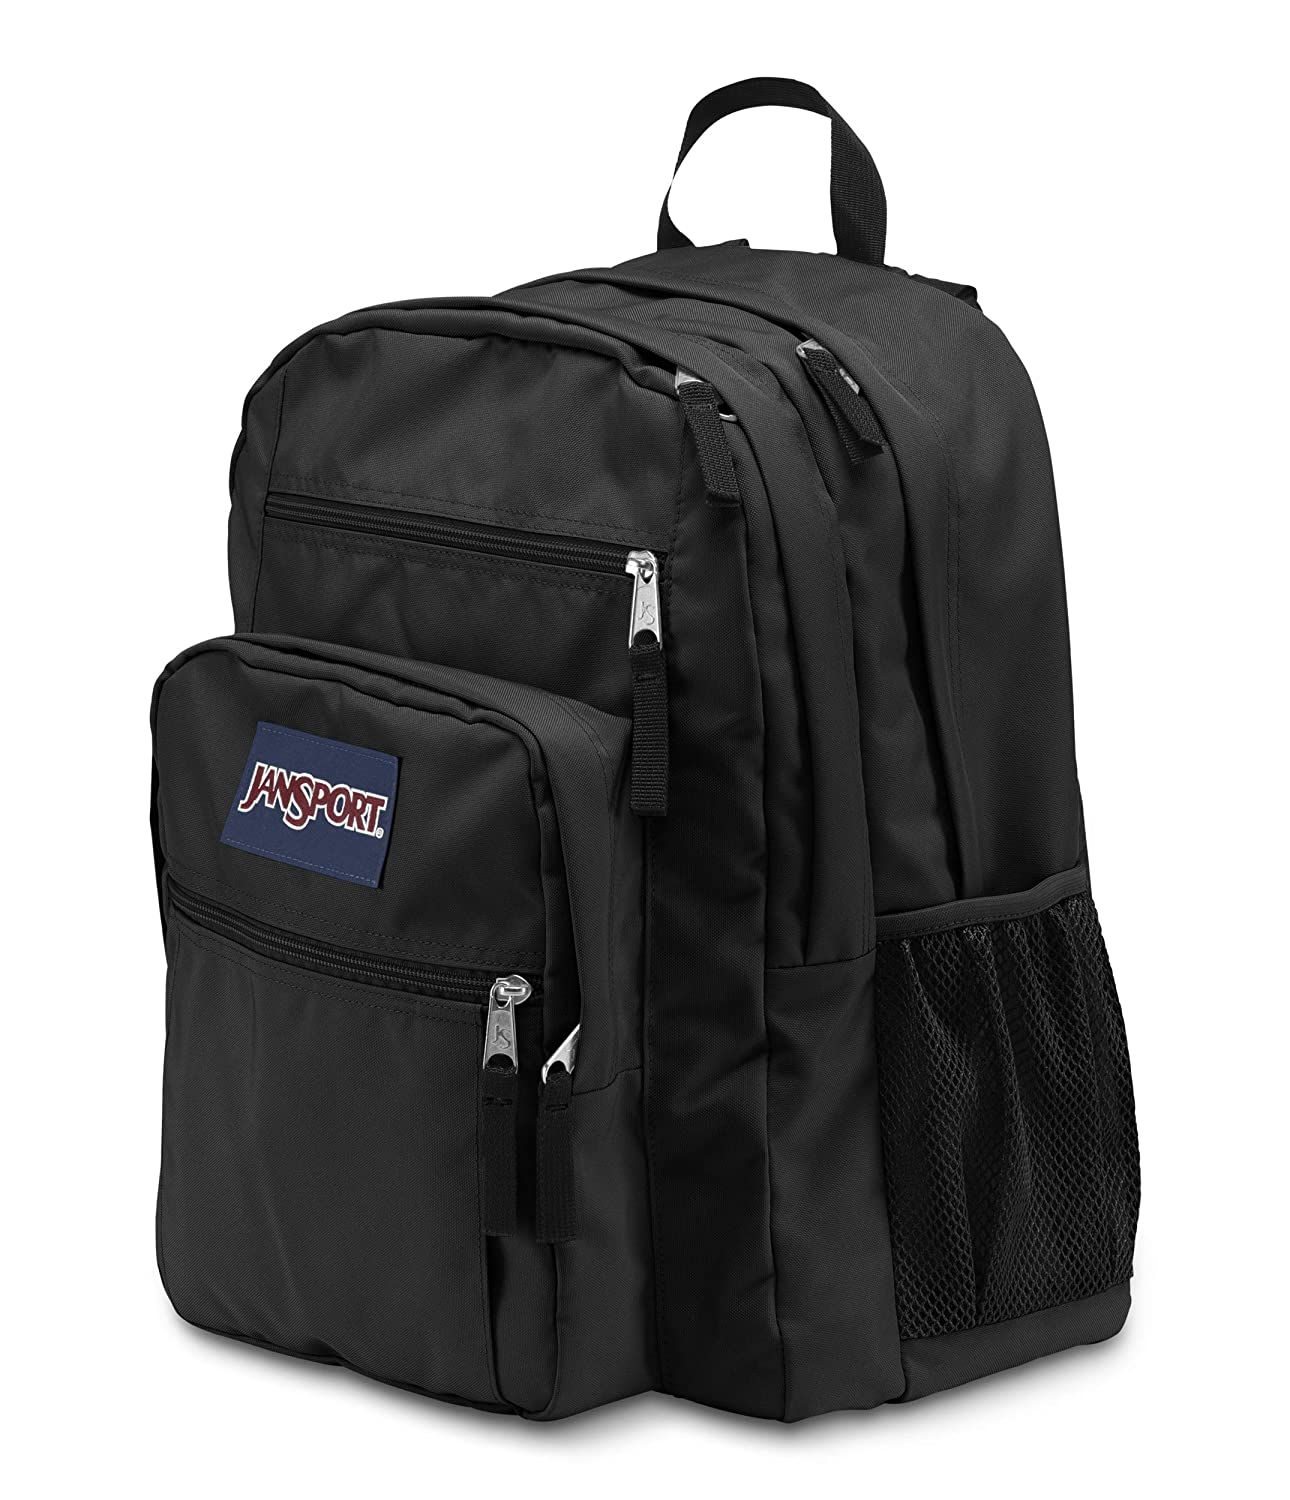 Jansport Big Student Rucksack - Black 2b084e31bea61